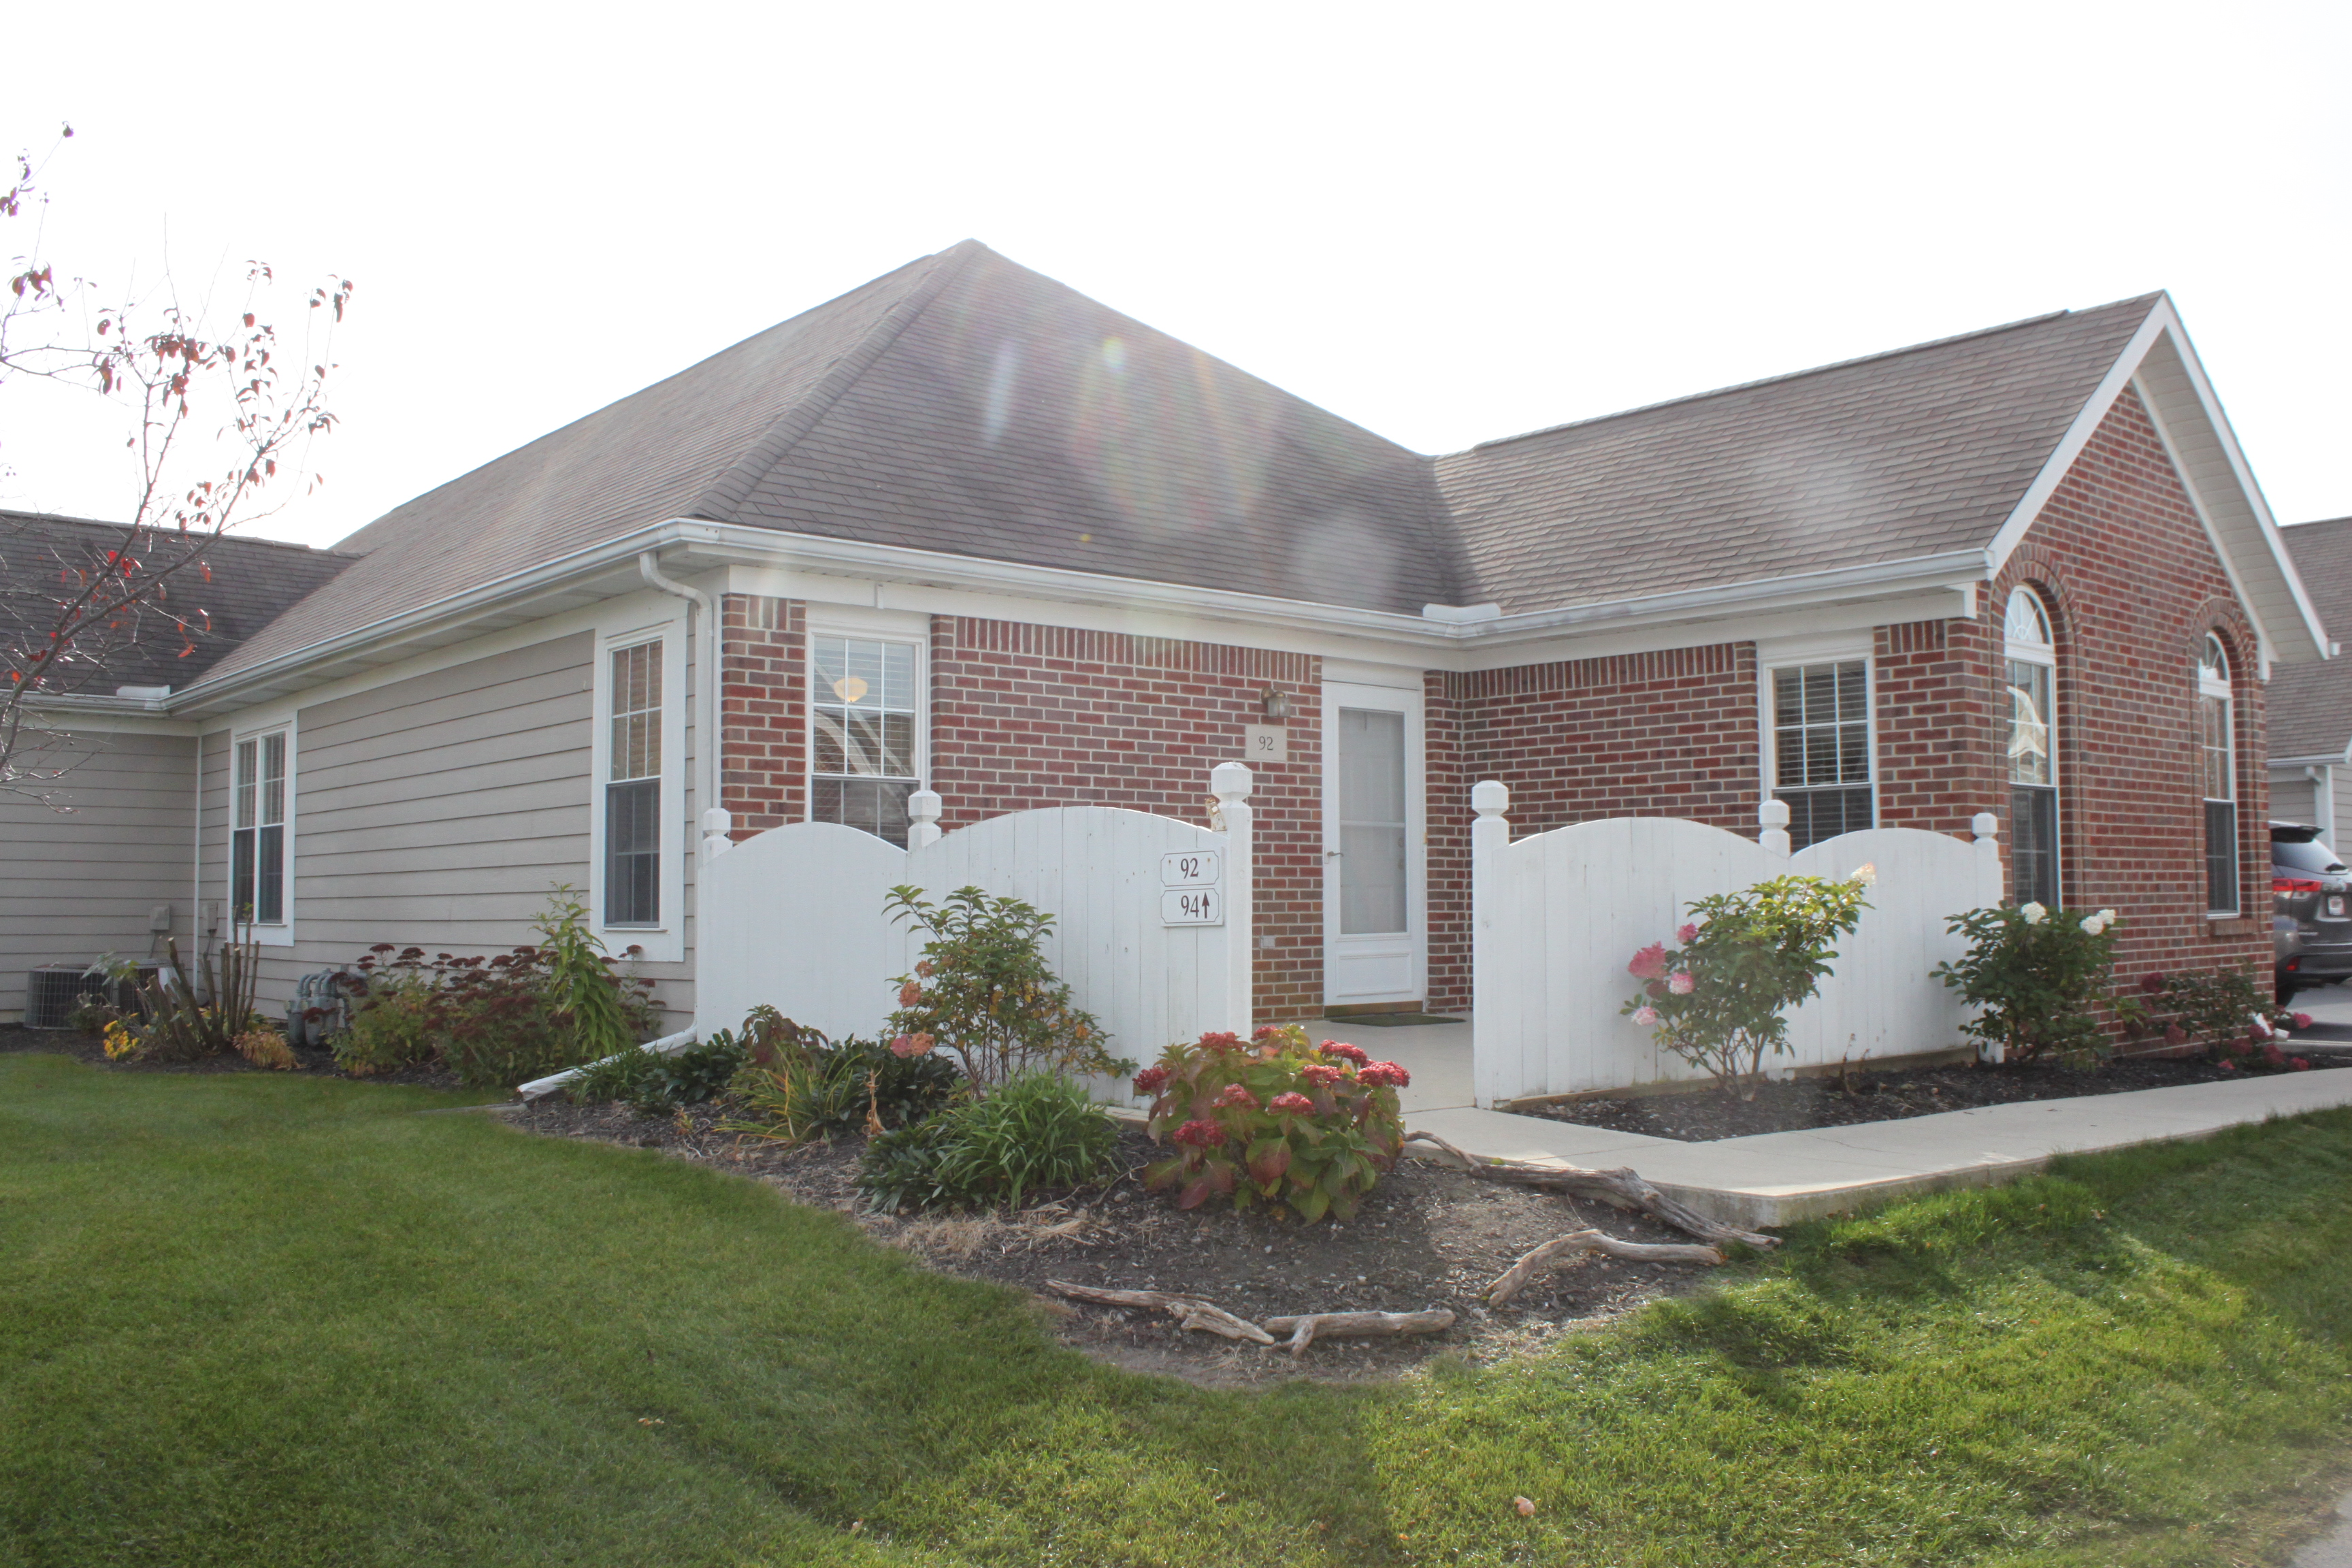 92 Summerfield Blvd., Bowling Green, OH